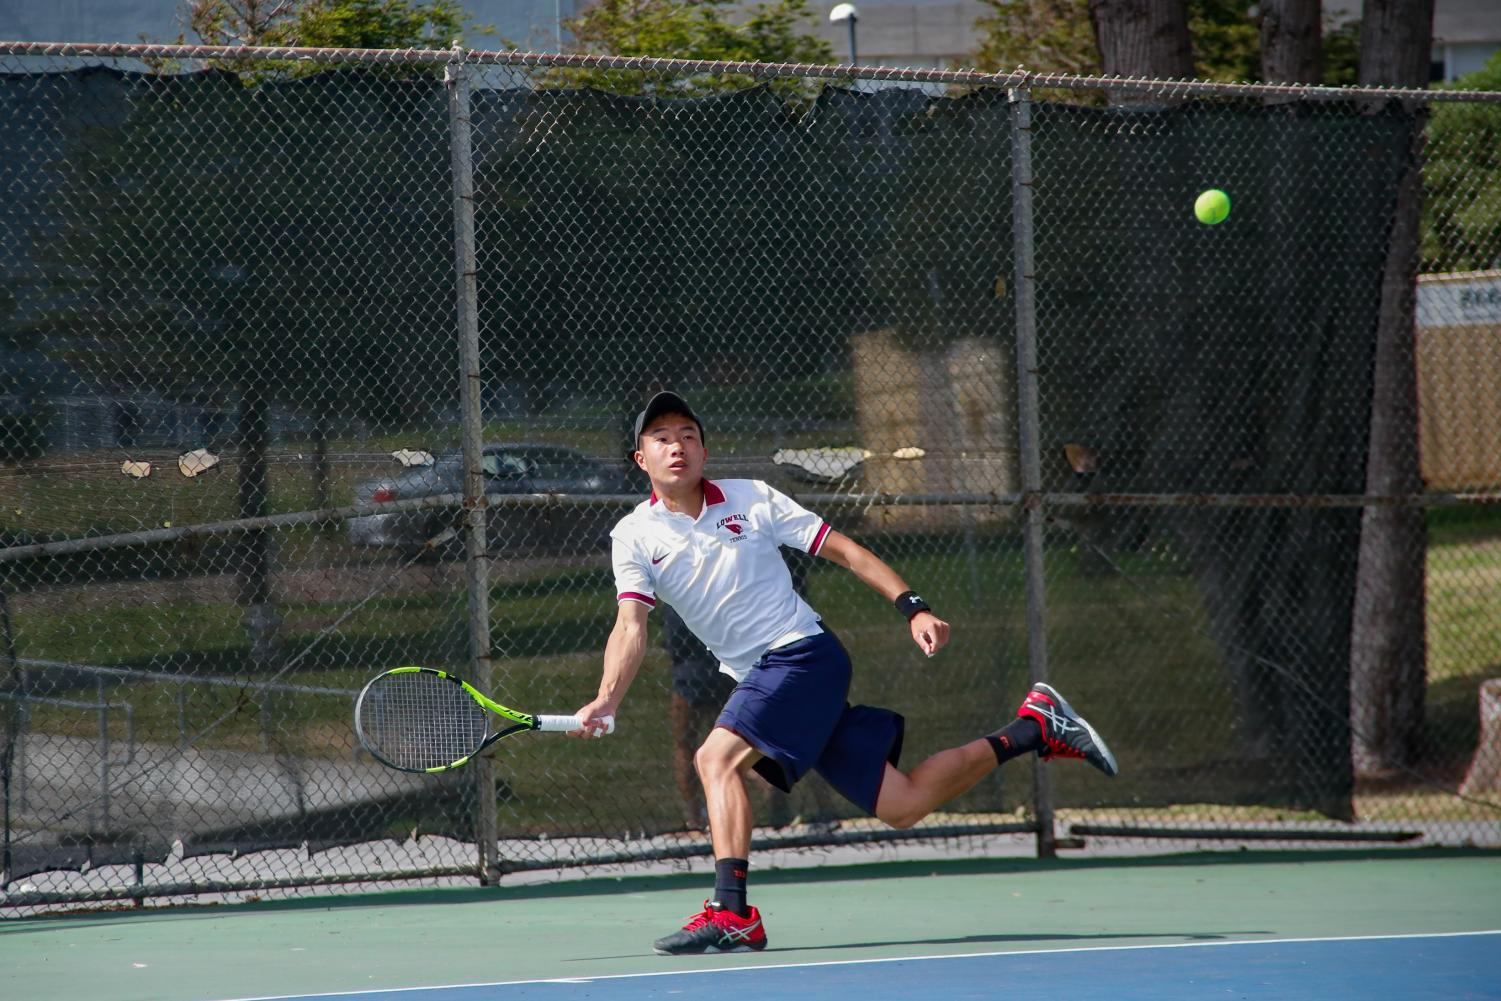 Senior Justin Pau faced off against Sheldon On from Balboa for the fourth year in a row.